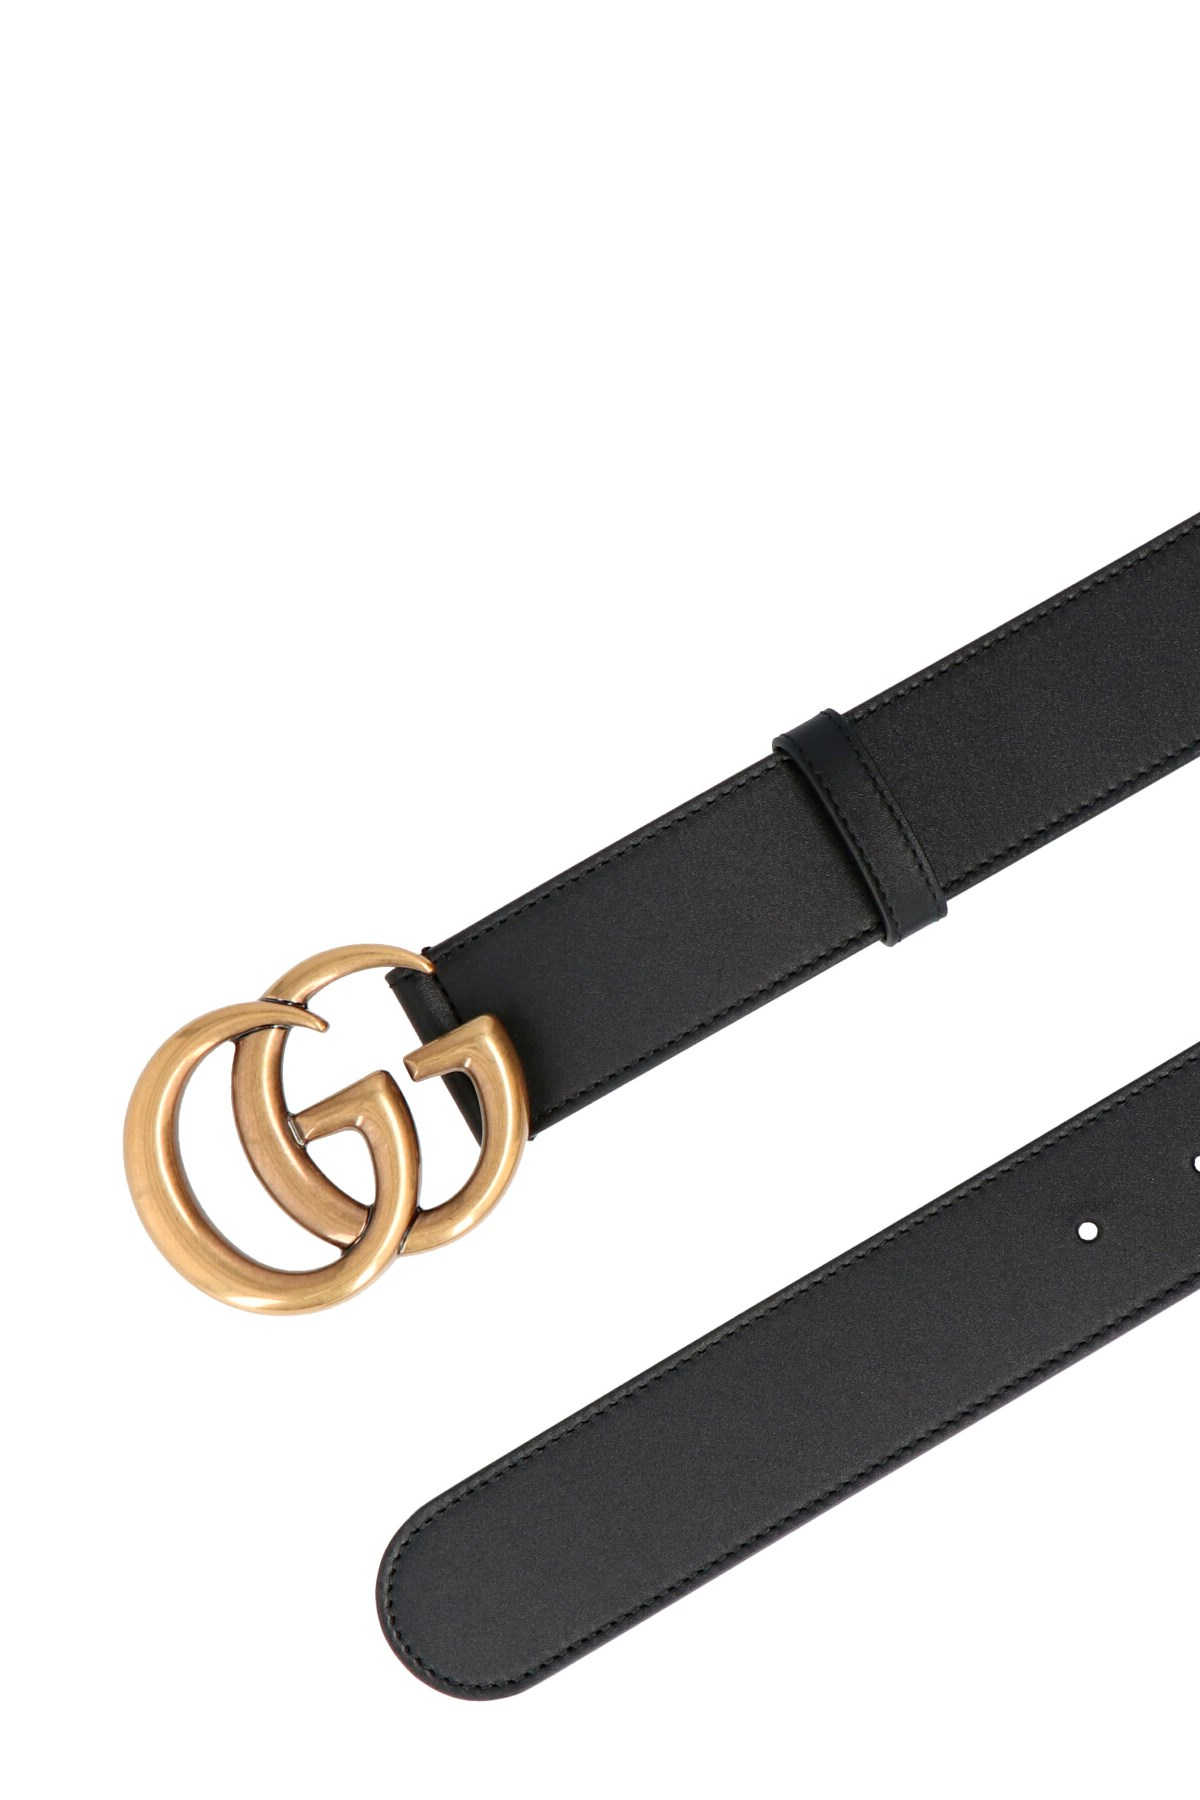 b8a567013 gucci 'GG marmont' belt available on julian-fashion.com - 91774